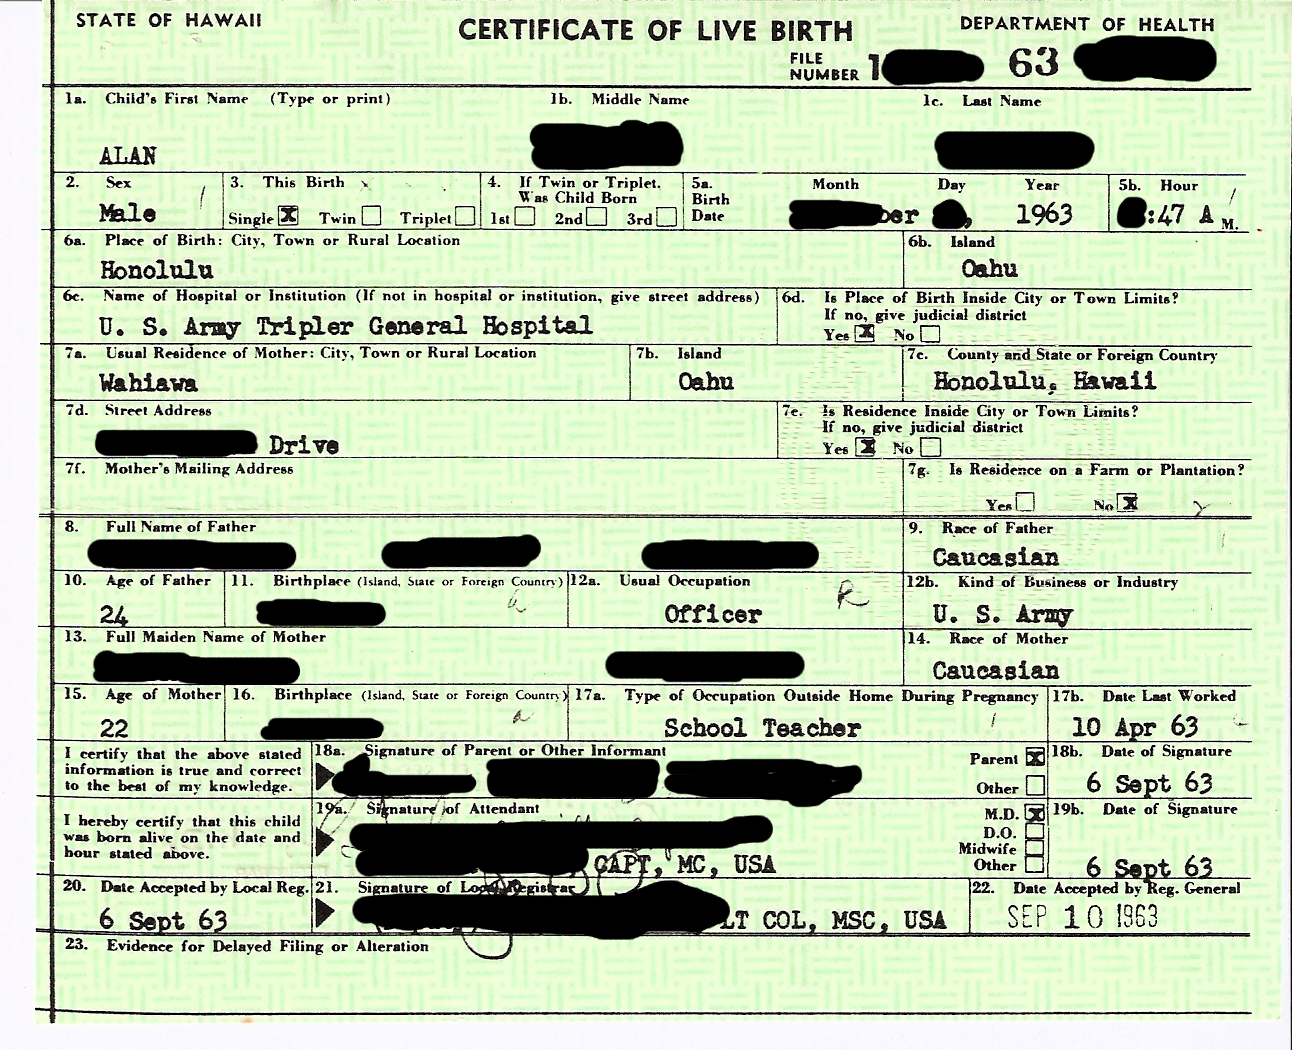 Birth certificate obama conspiracy theories 1963 alan birth certificate image from hawaii aiddatafo Gallery